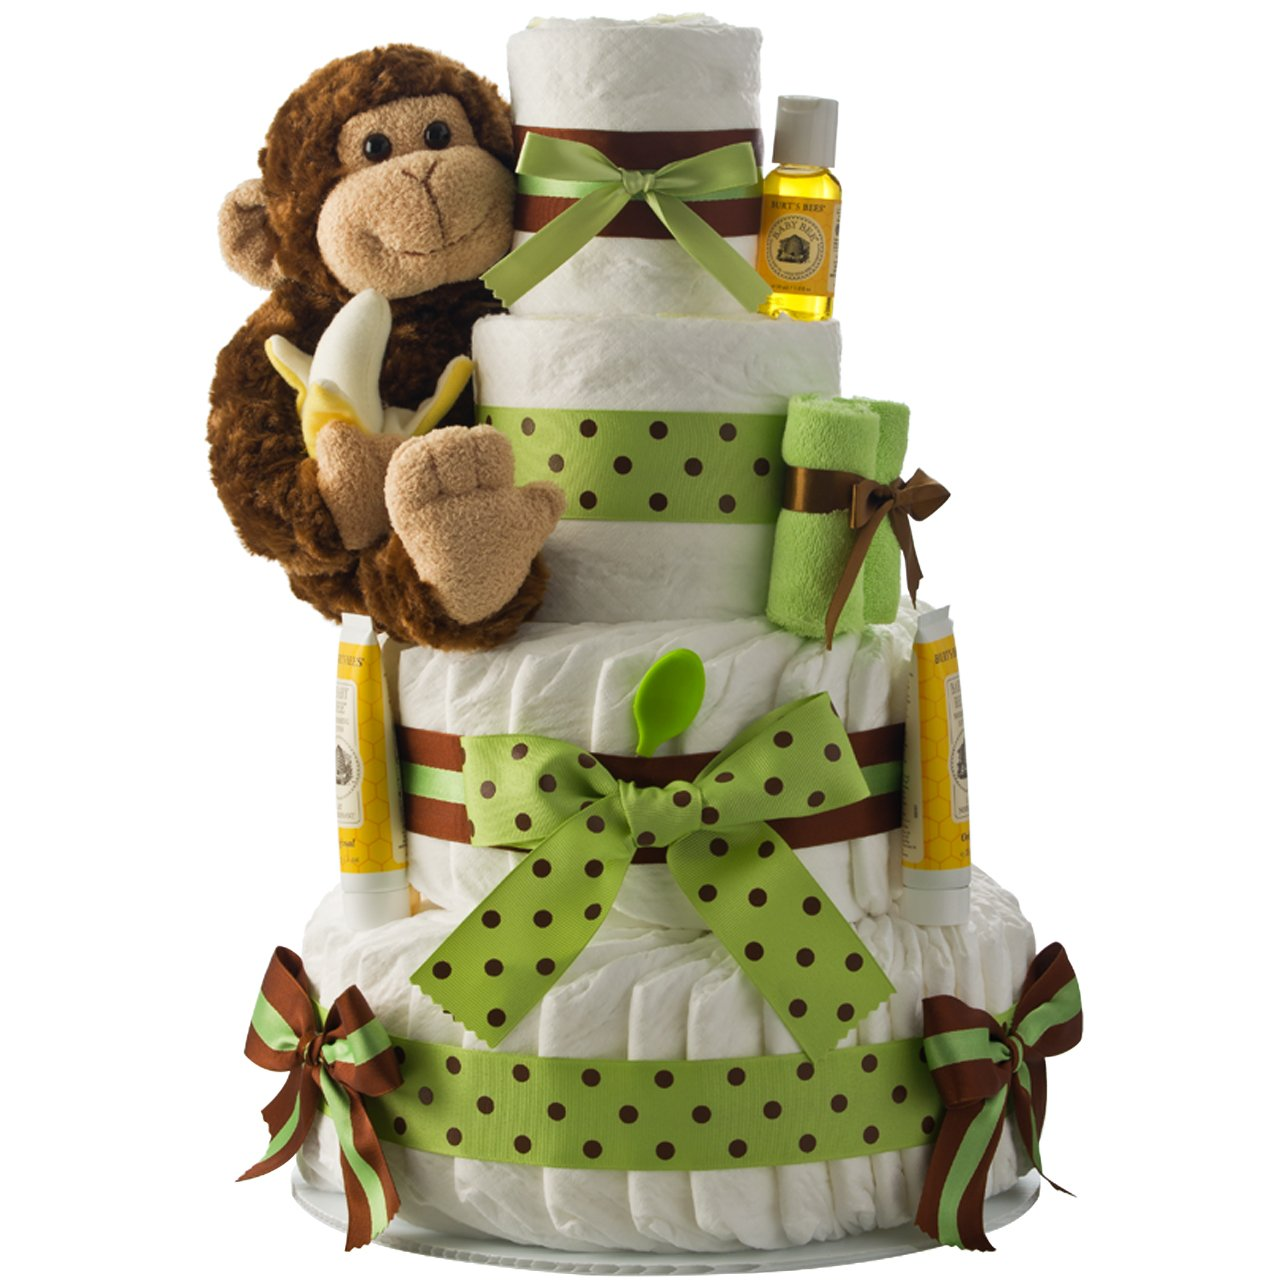 Our Lil' Monkey 4 Tier Green Diaper Cake